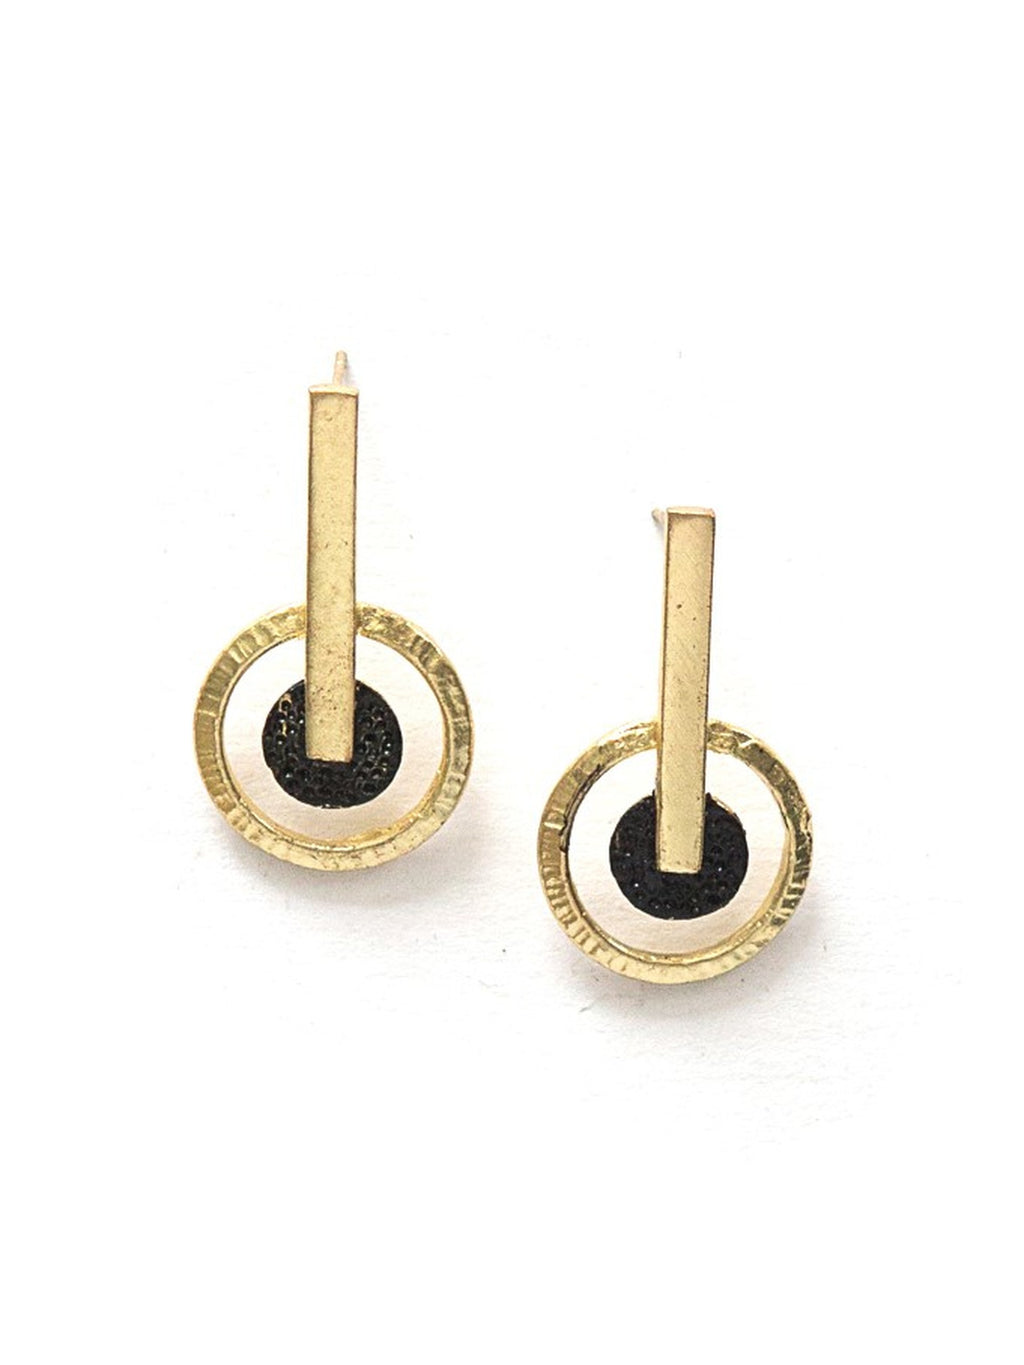 Brushed Gold Droplet Stud Earrings